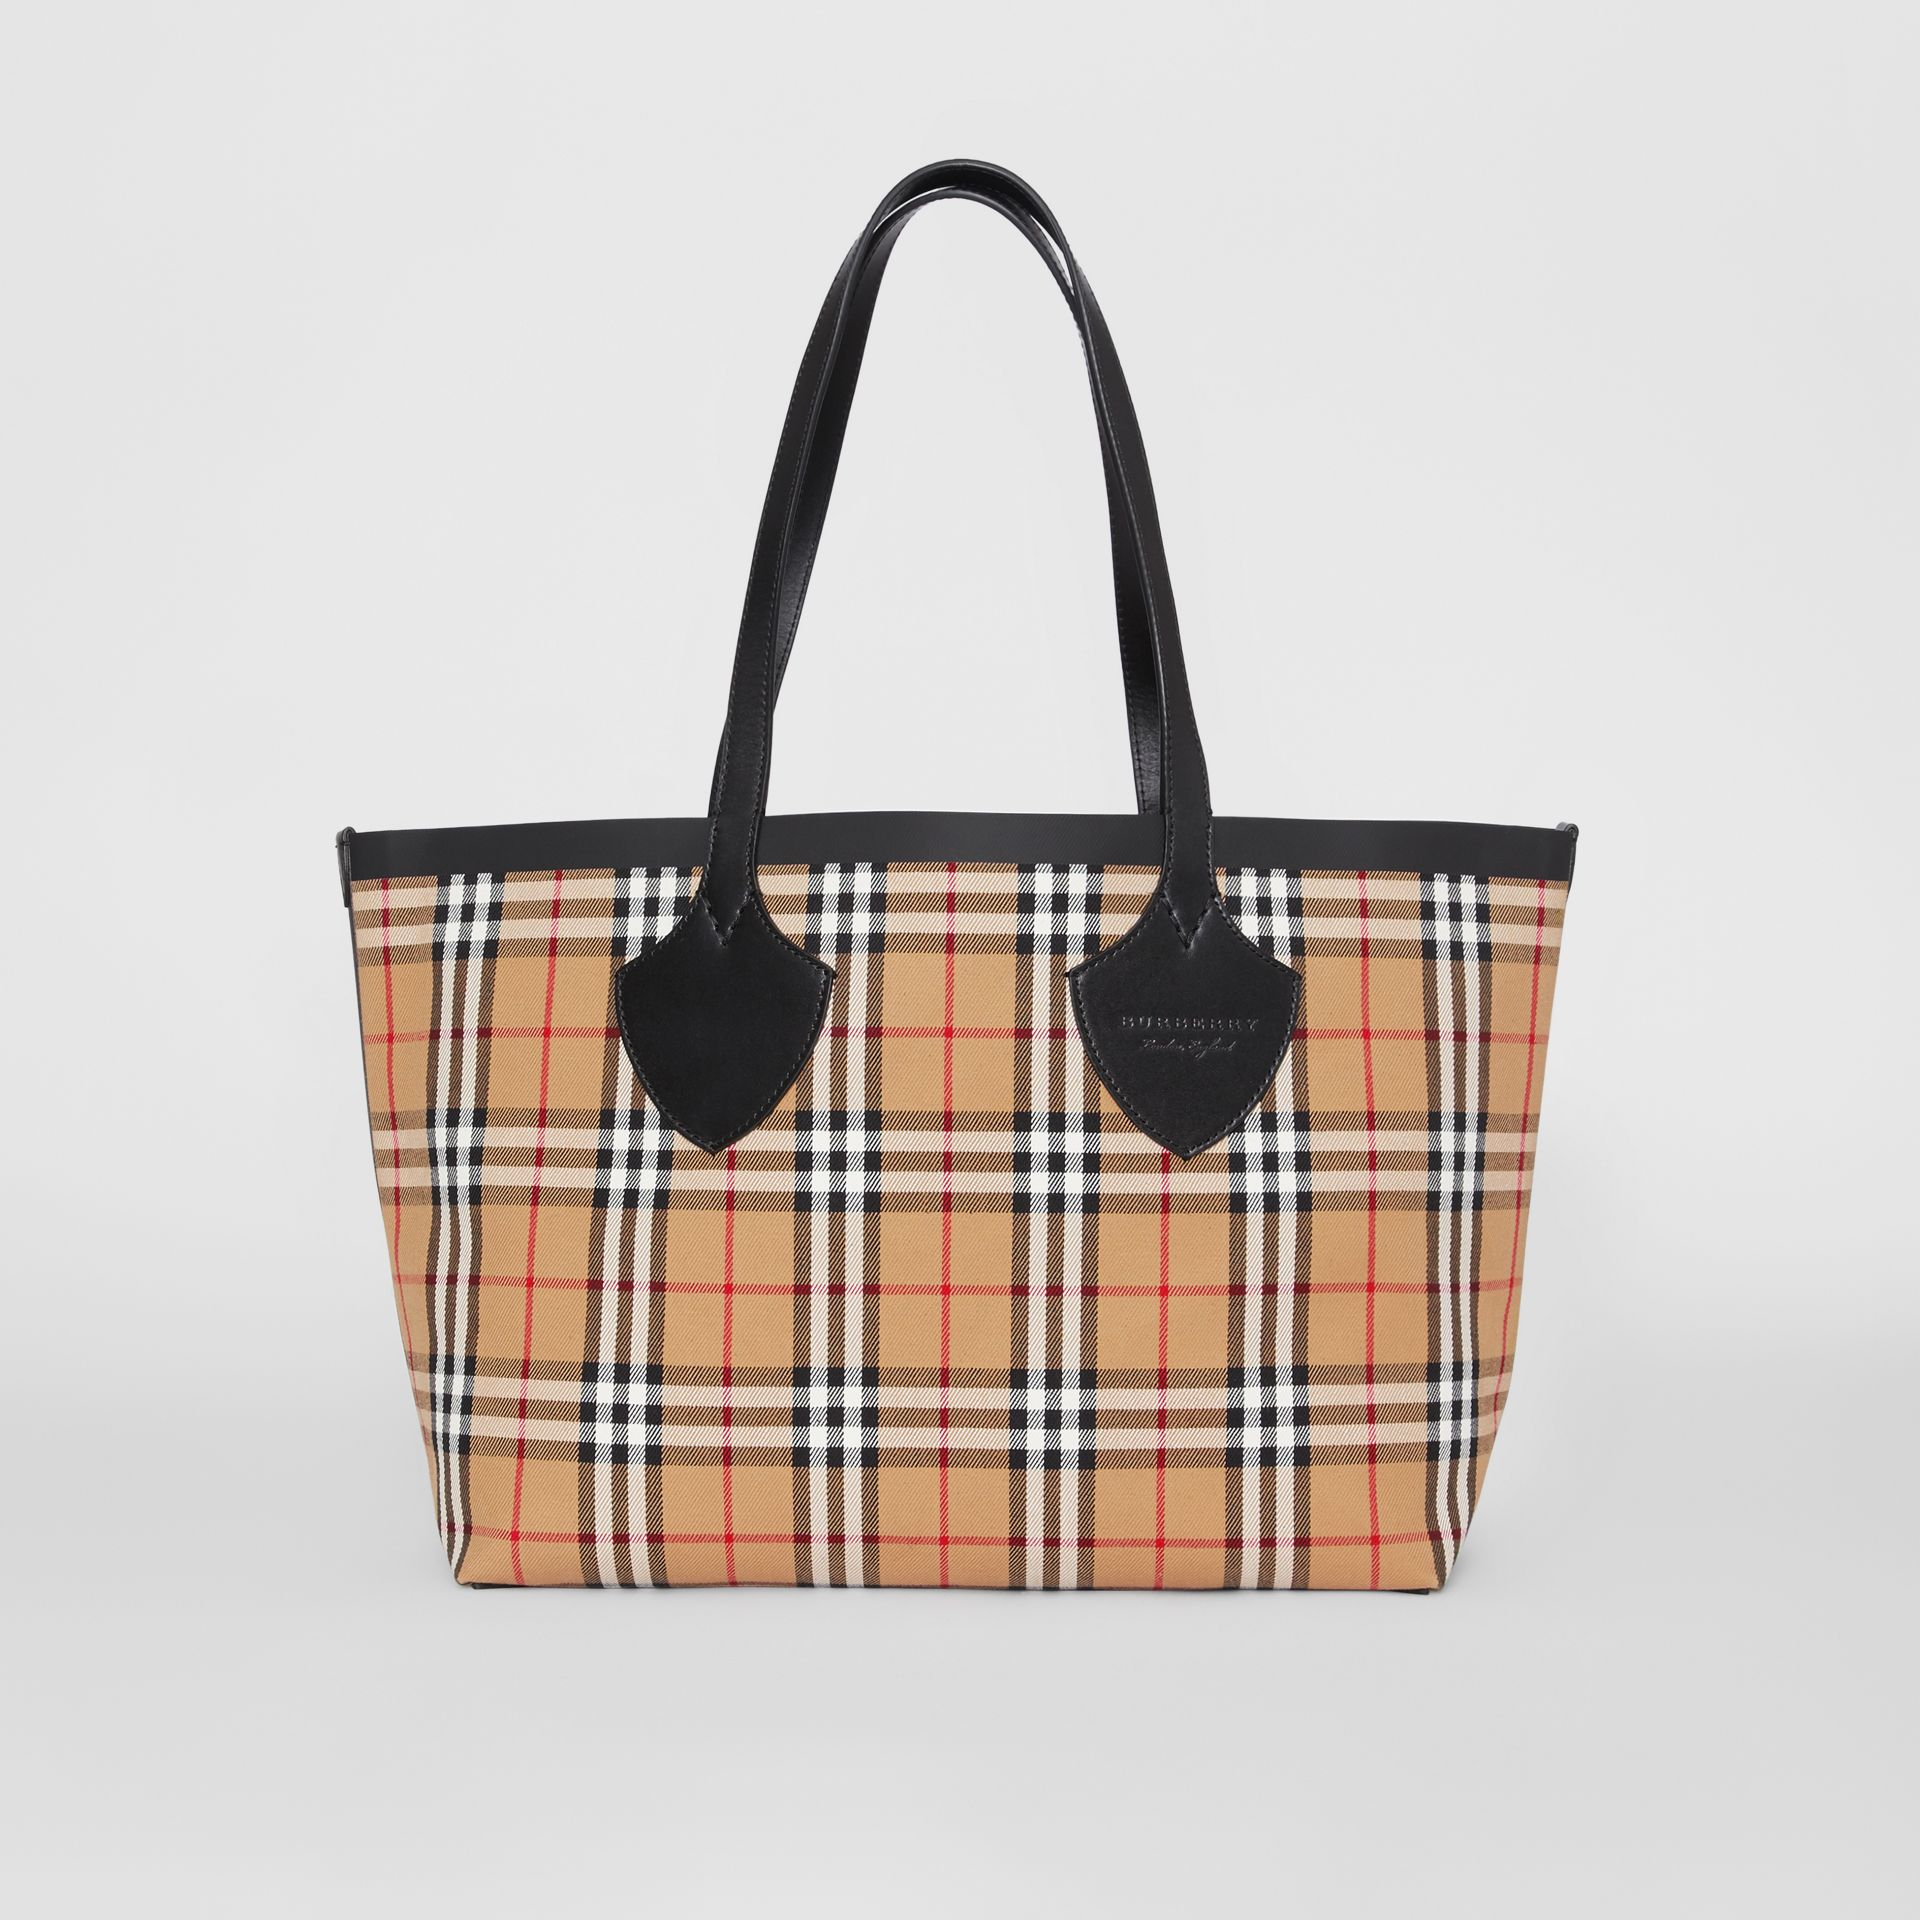 Sac tote The Giant moyen en Vintage check (Jaune Antique/rouge Vif) | Burberry - photo de la galerie 0